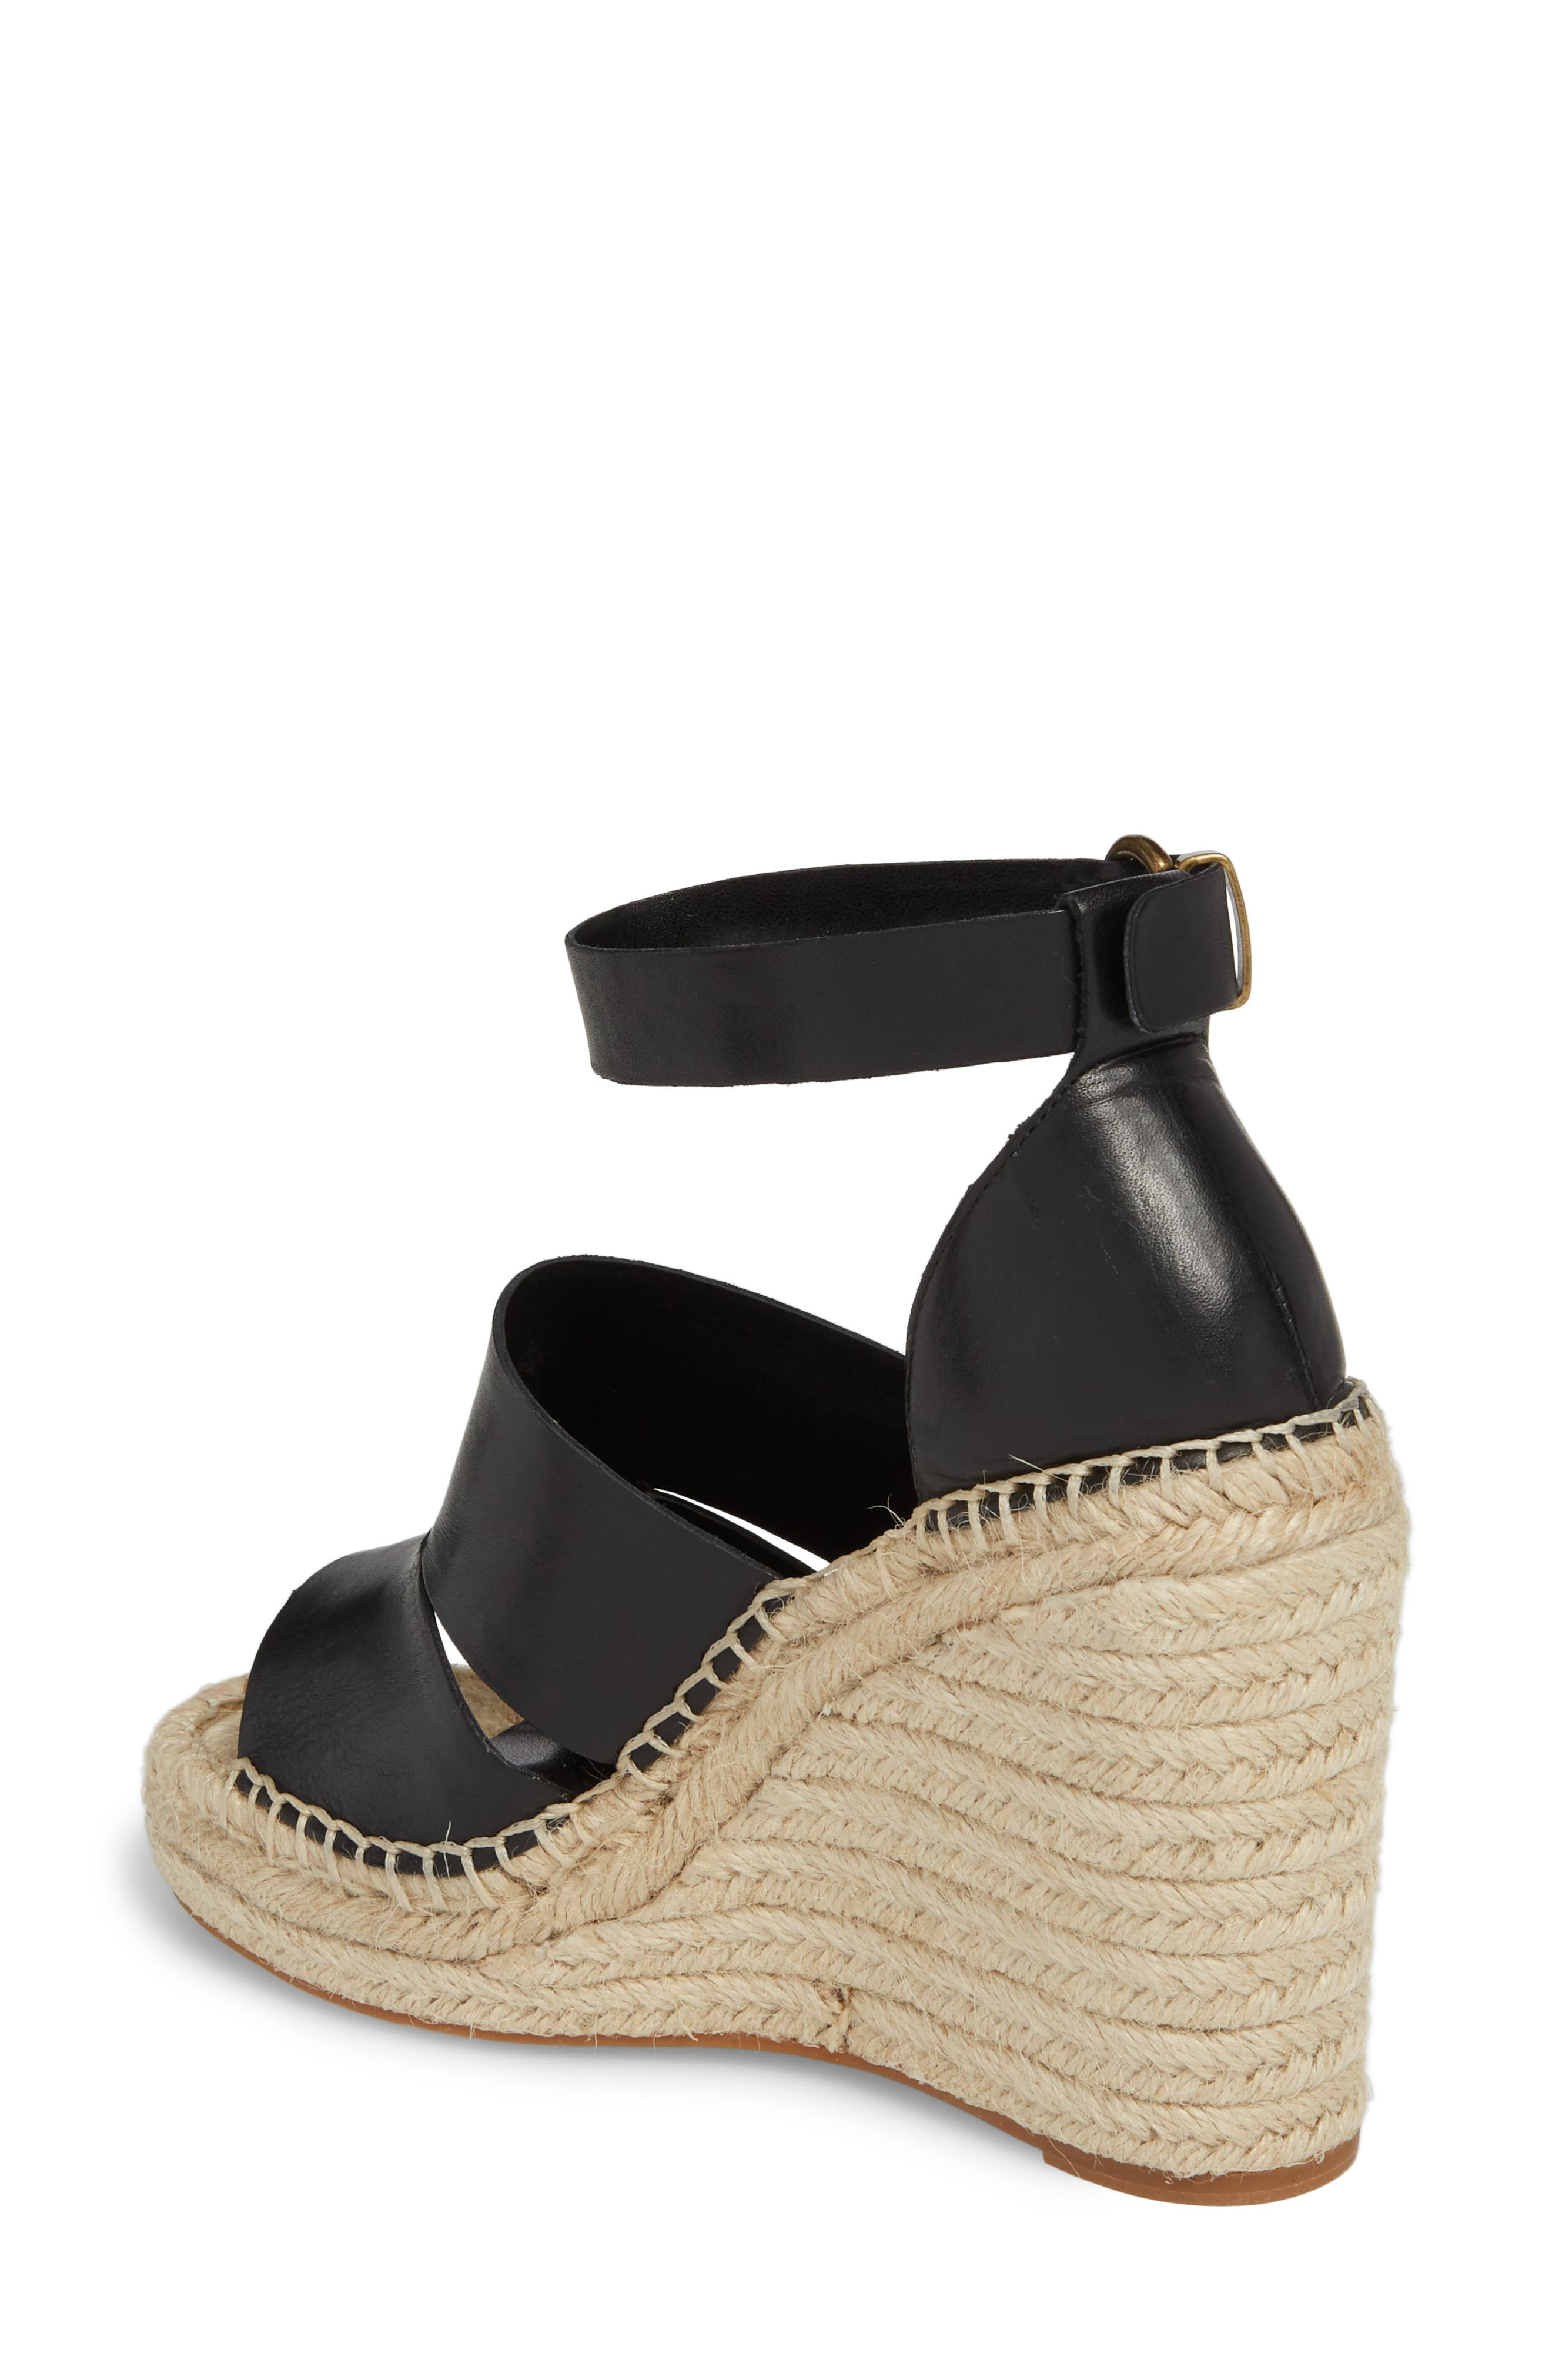 Sannibel Platform Wedge Sandal,                             Alternate thumbnail 2, color,                             BLACK LEATHER